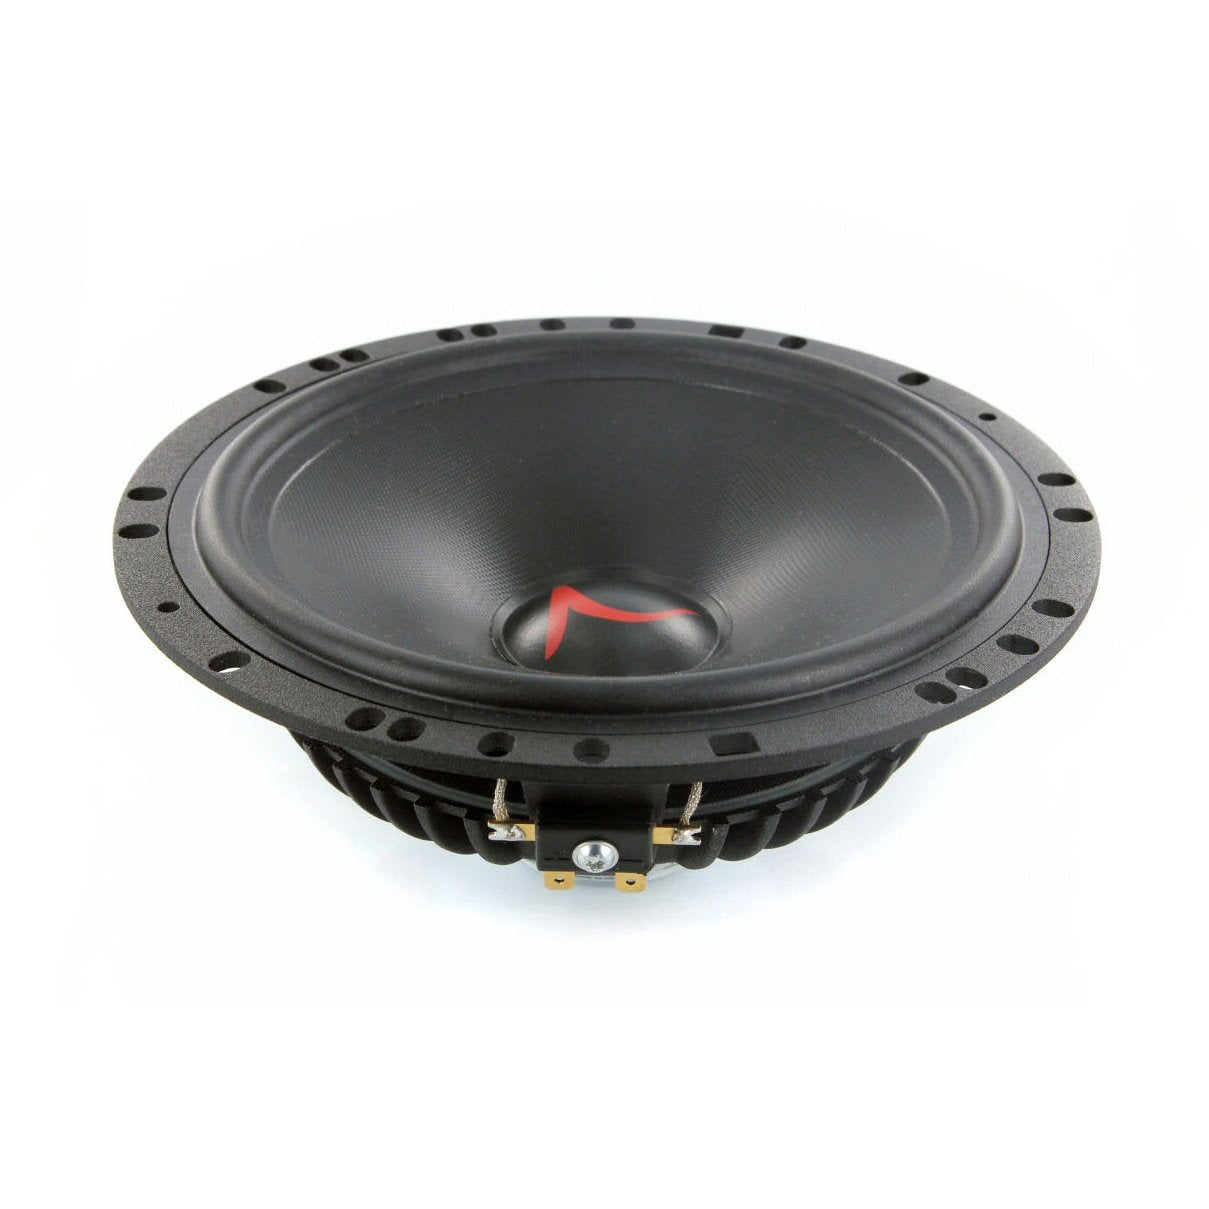 Scanspeak 16W/4434G00 Automotive Woofer - Discovery Series - Willys-Hifi Ltd